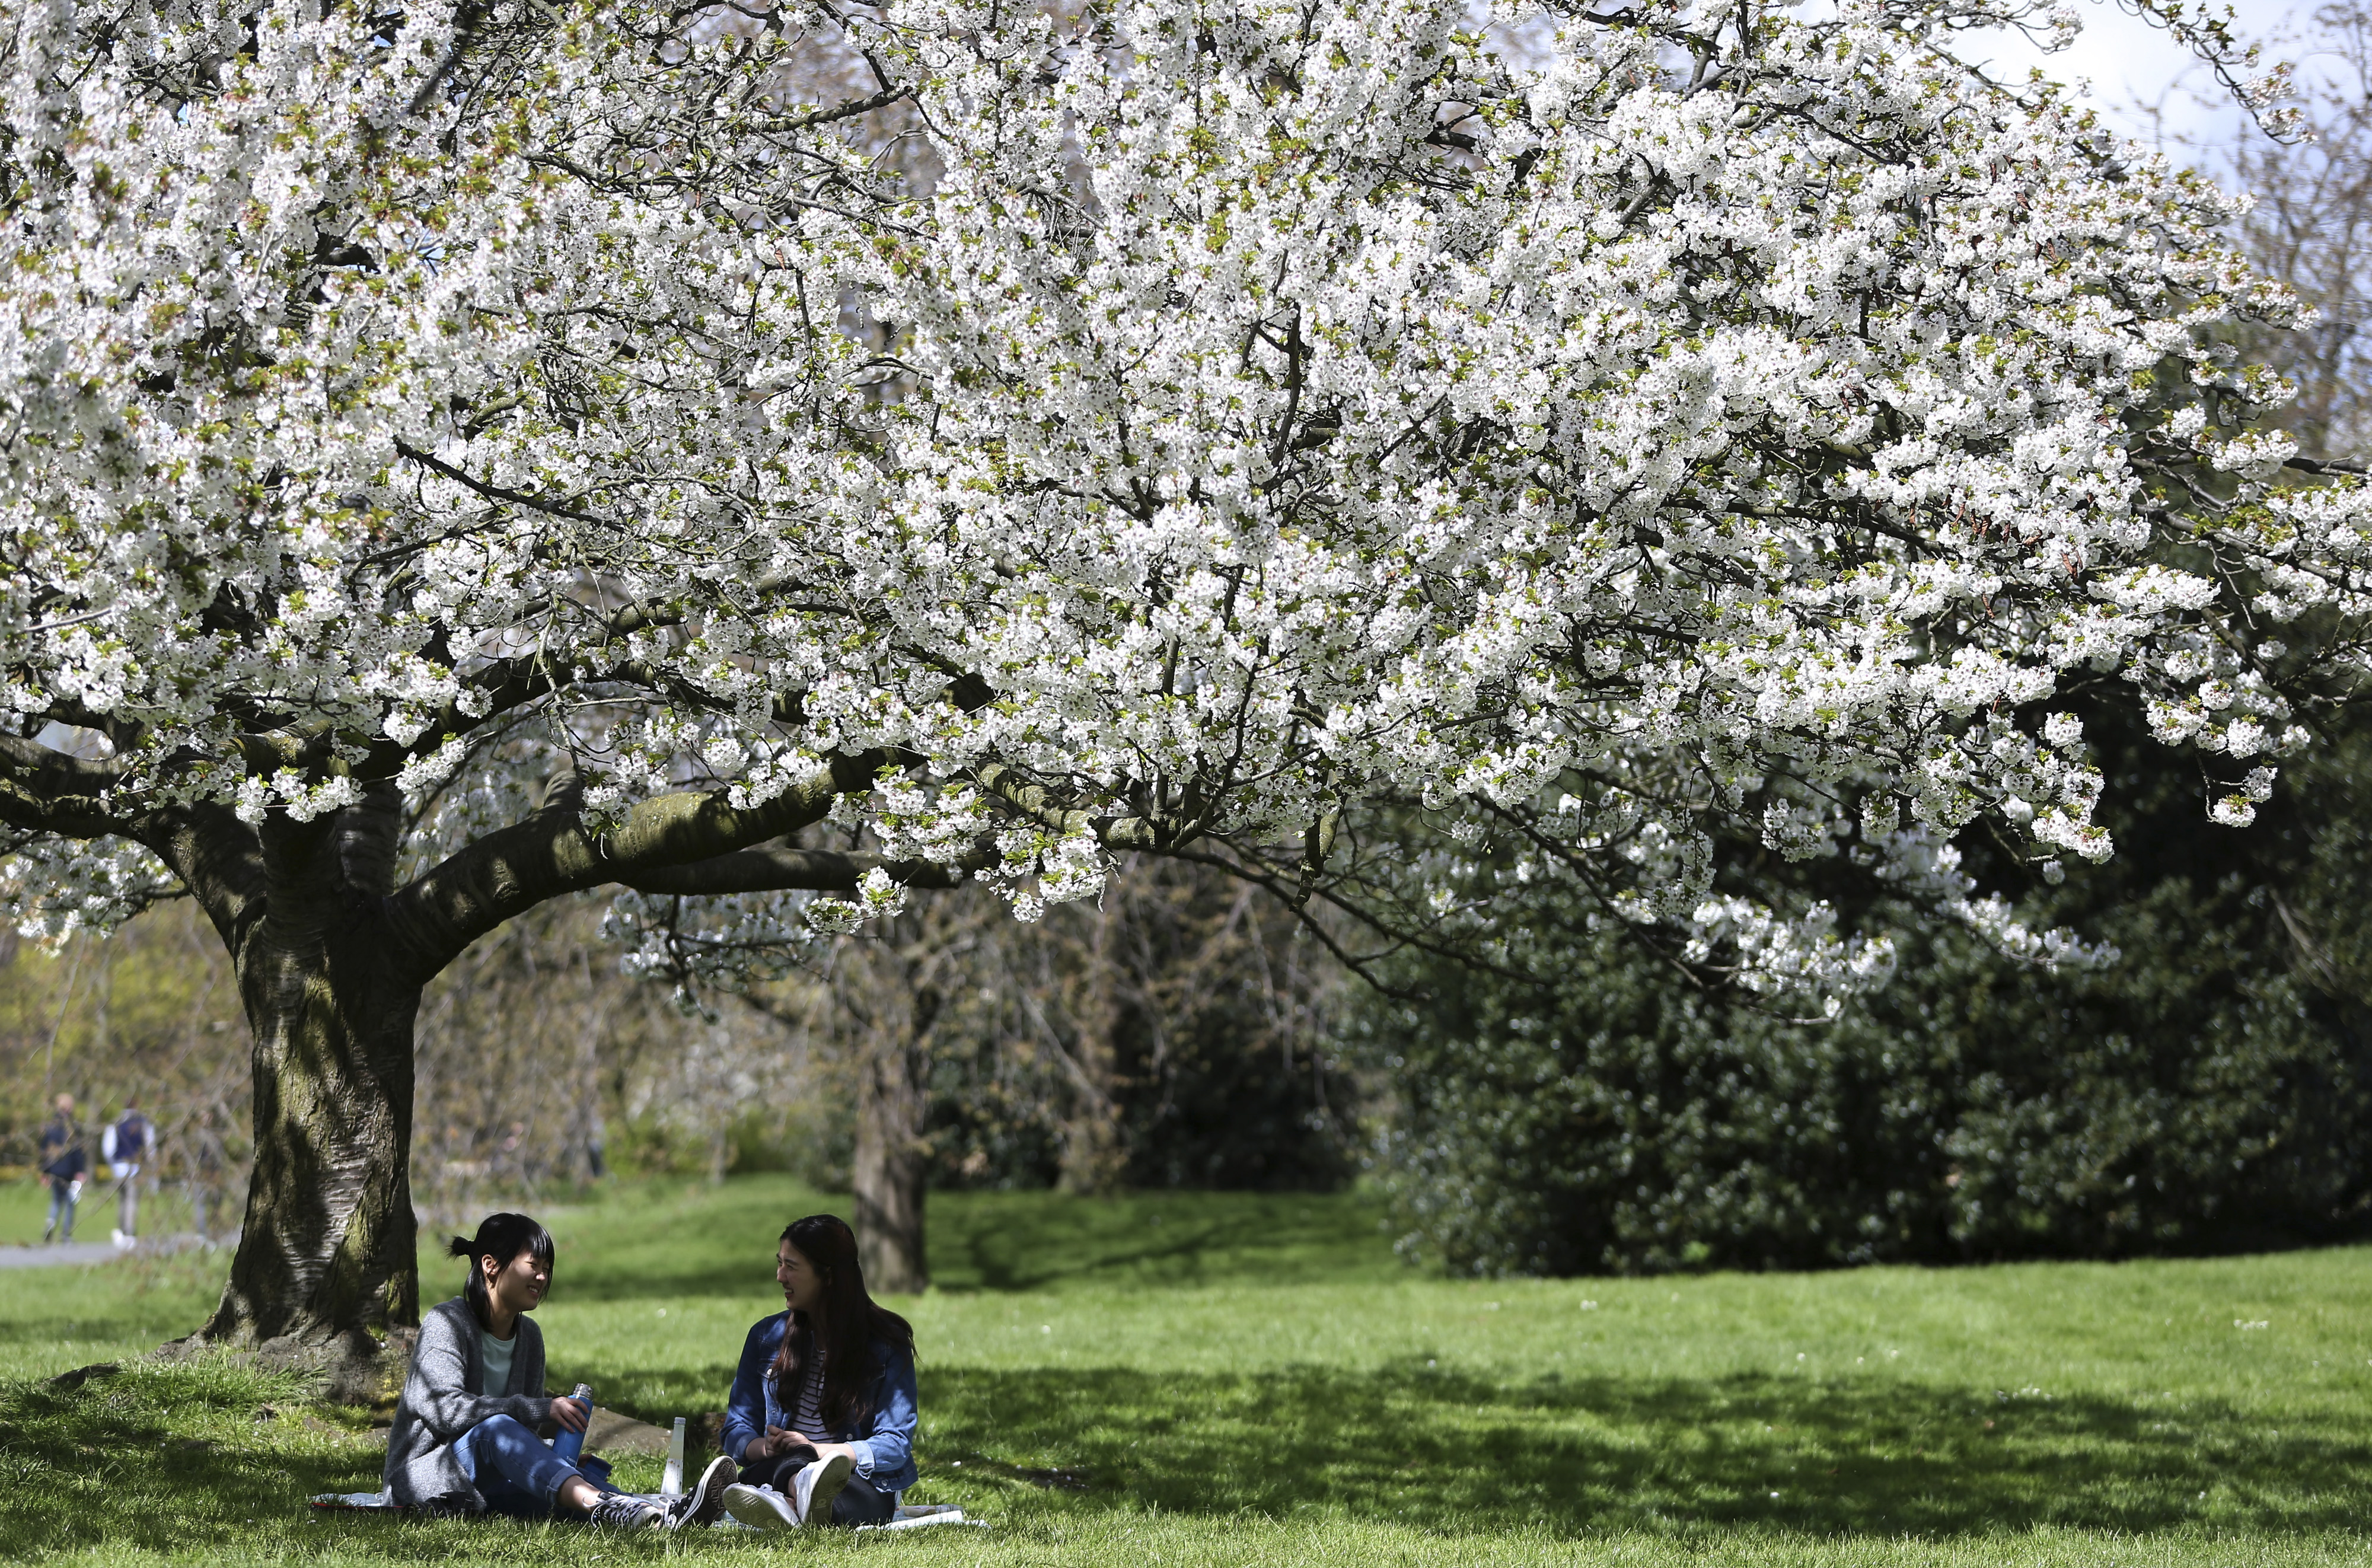 Two women enjoy a picnic under a tree in blossom on a sunny day in Regent's Park in London